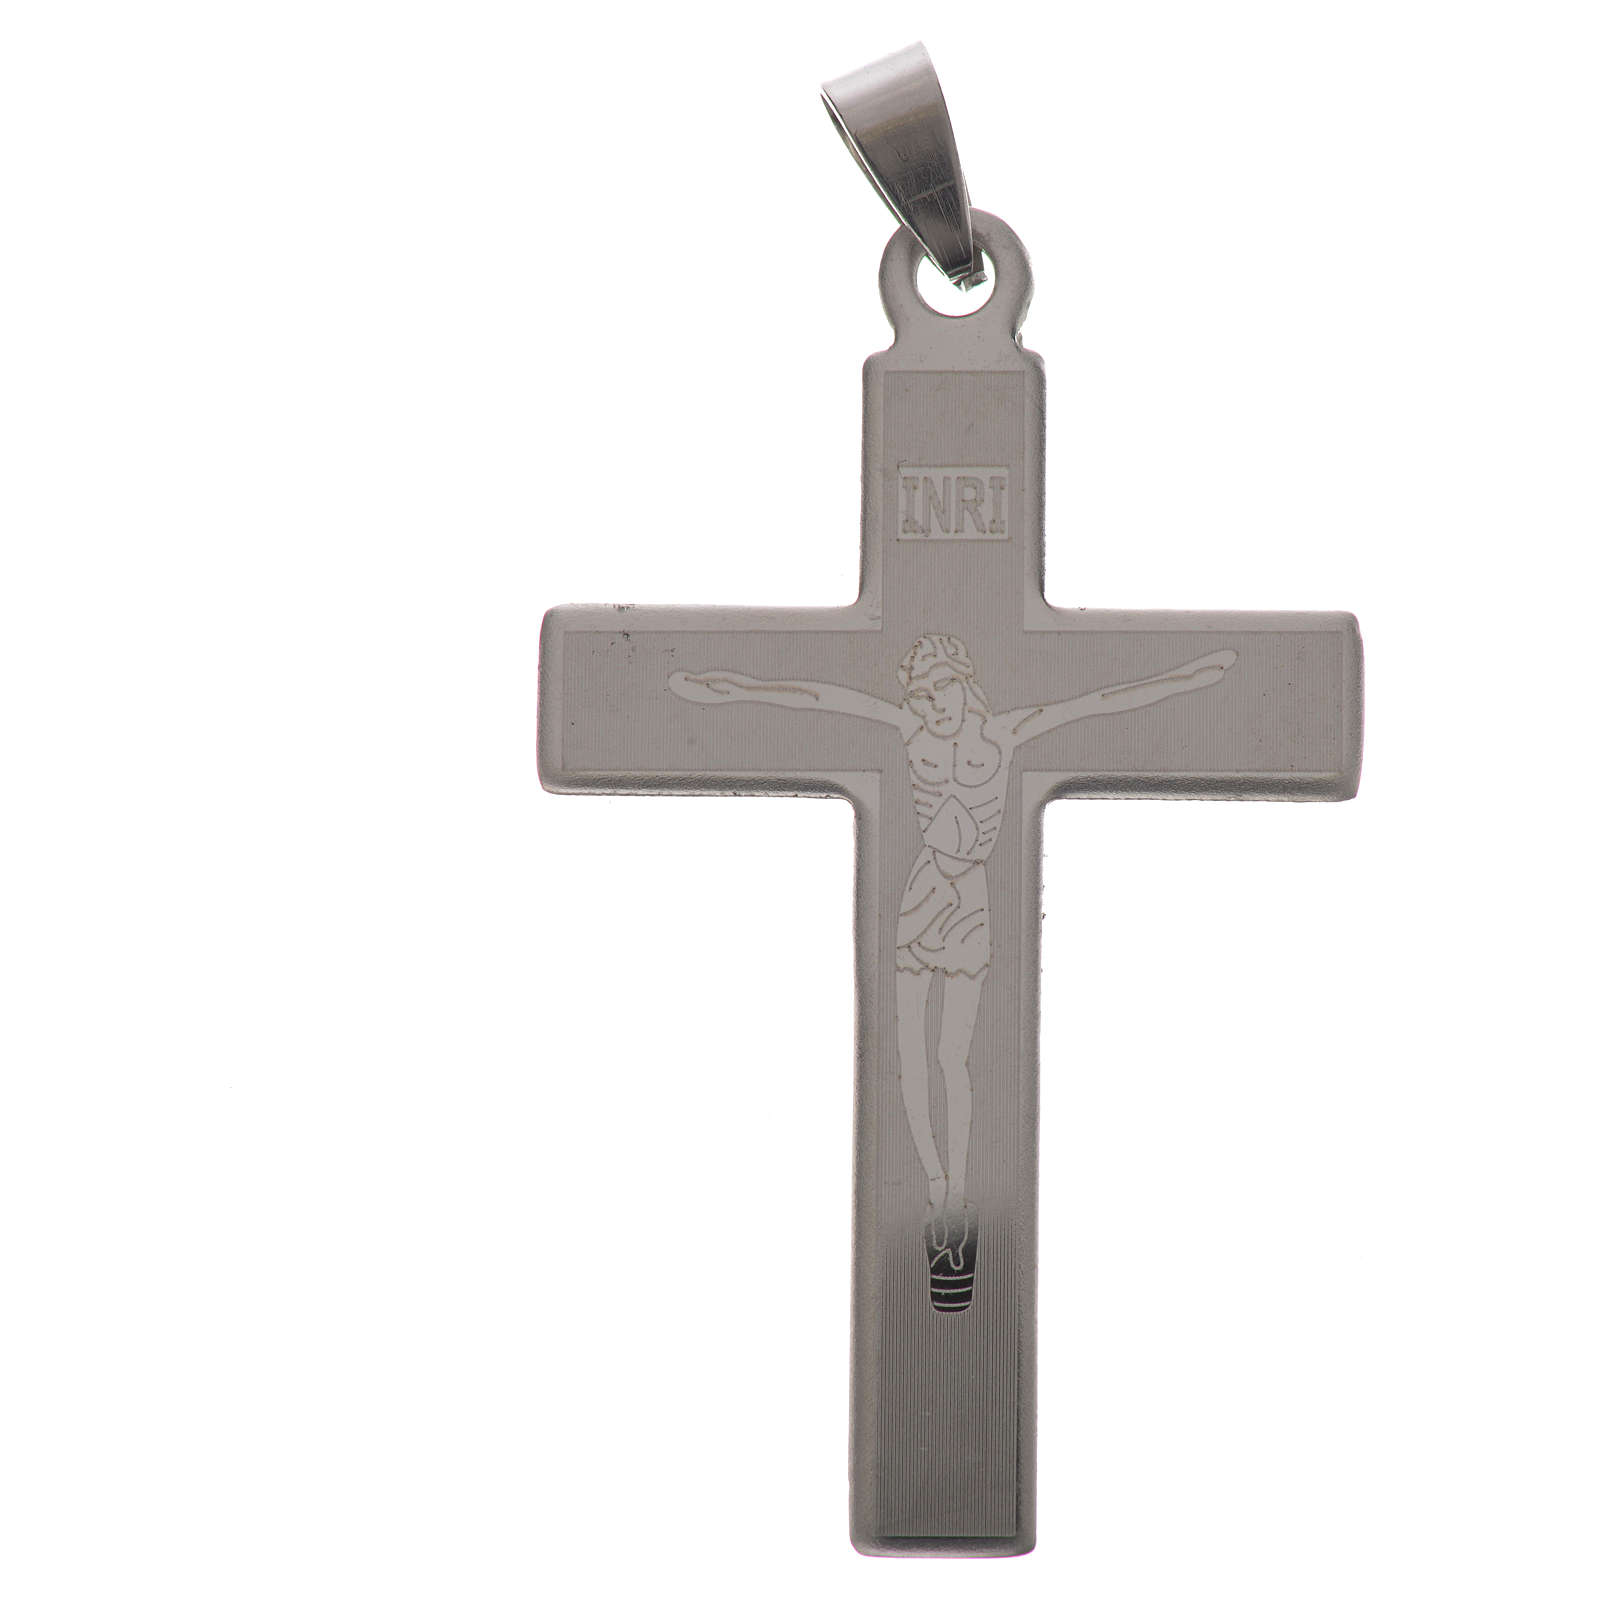 Steel cross with incision 3x5 cm 4